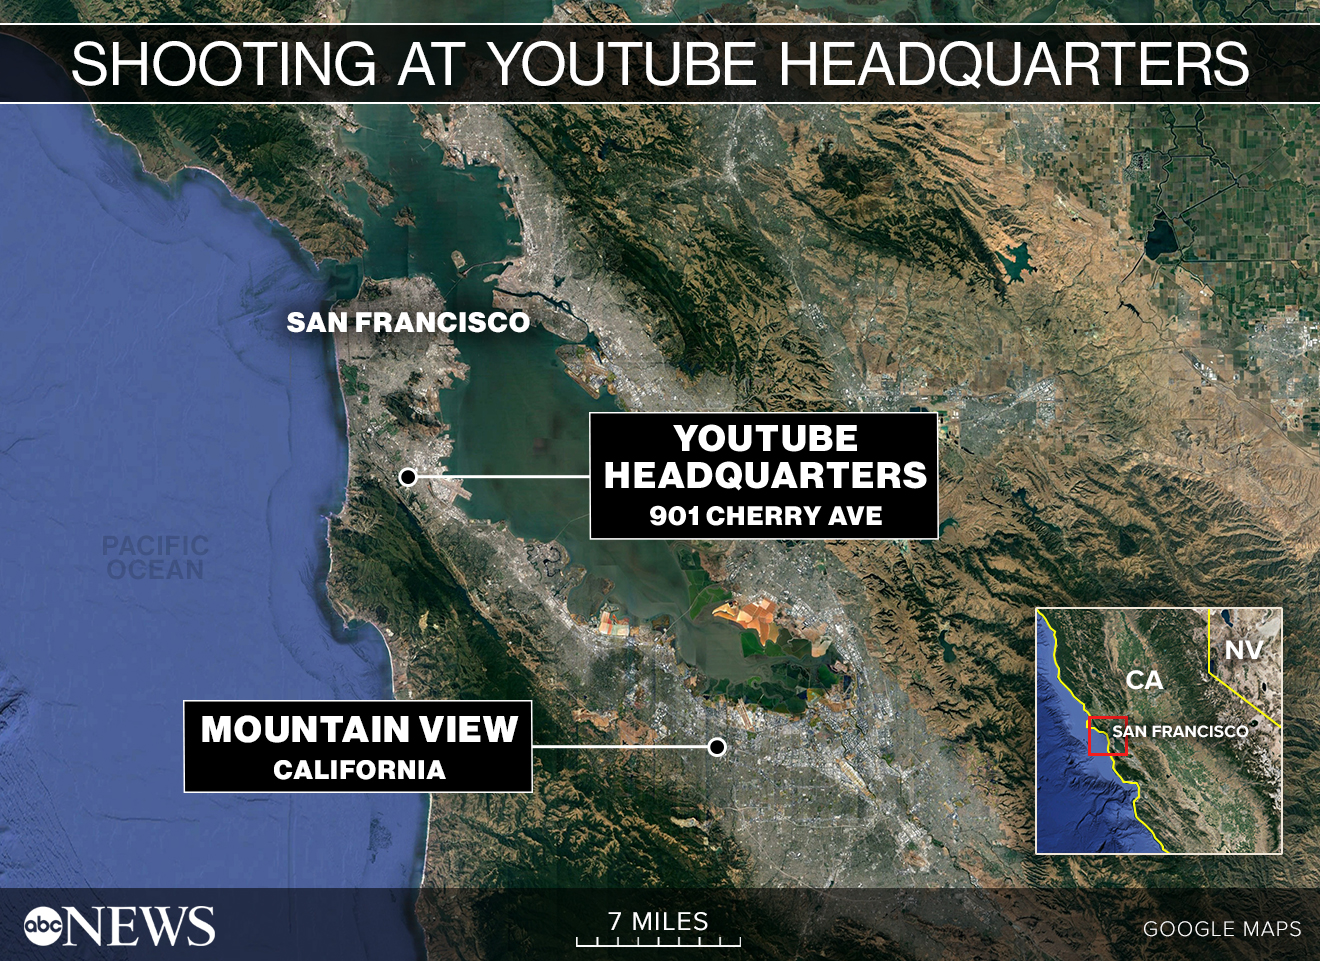 Police say 4 wounded at YouTube HQ shooting, suspect dead